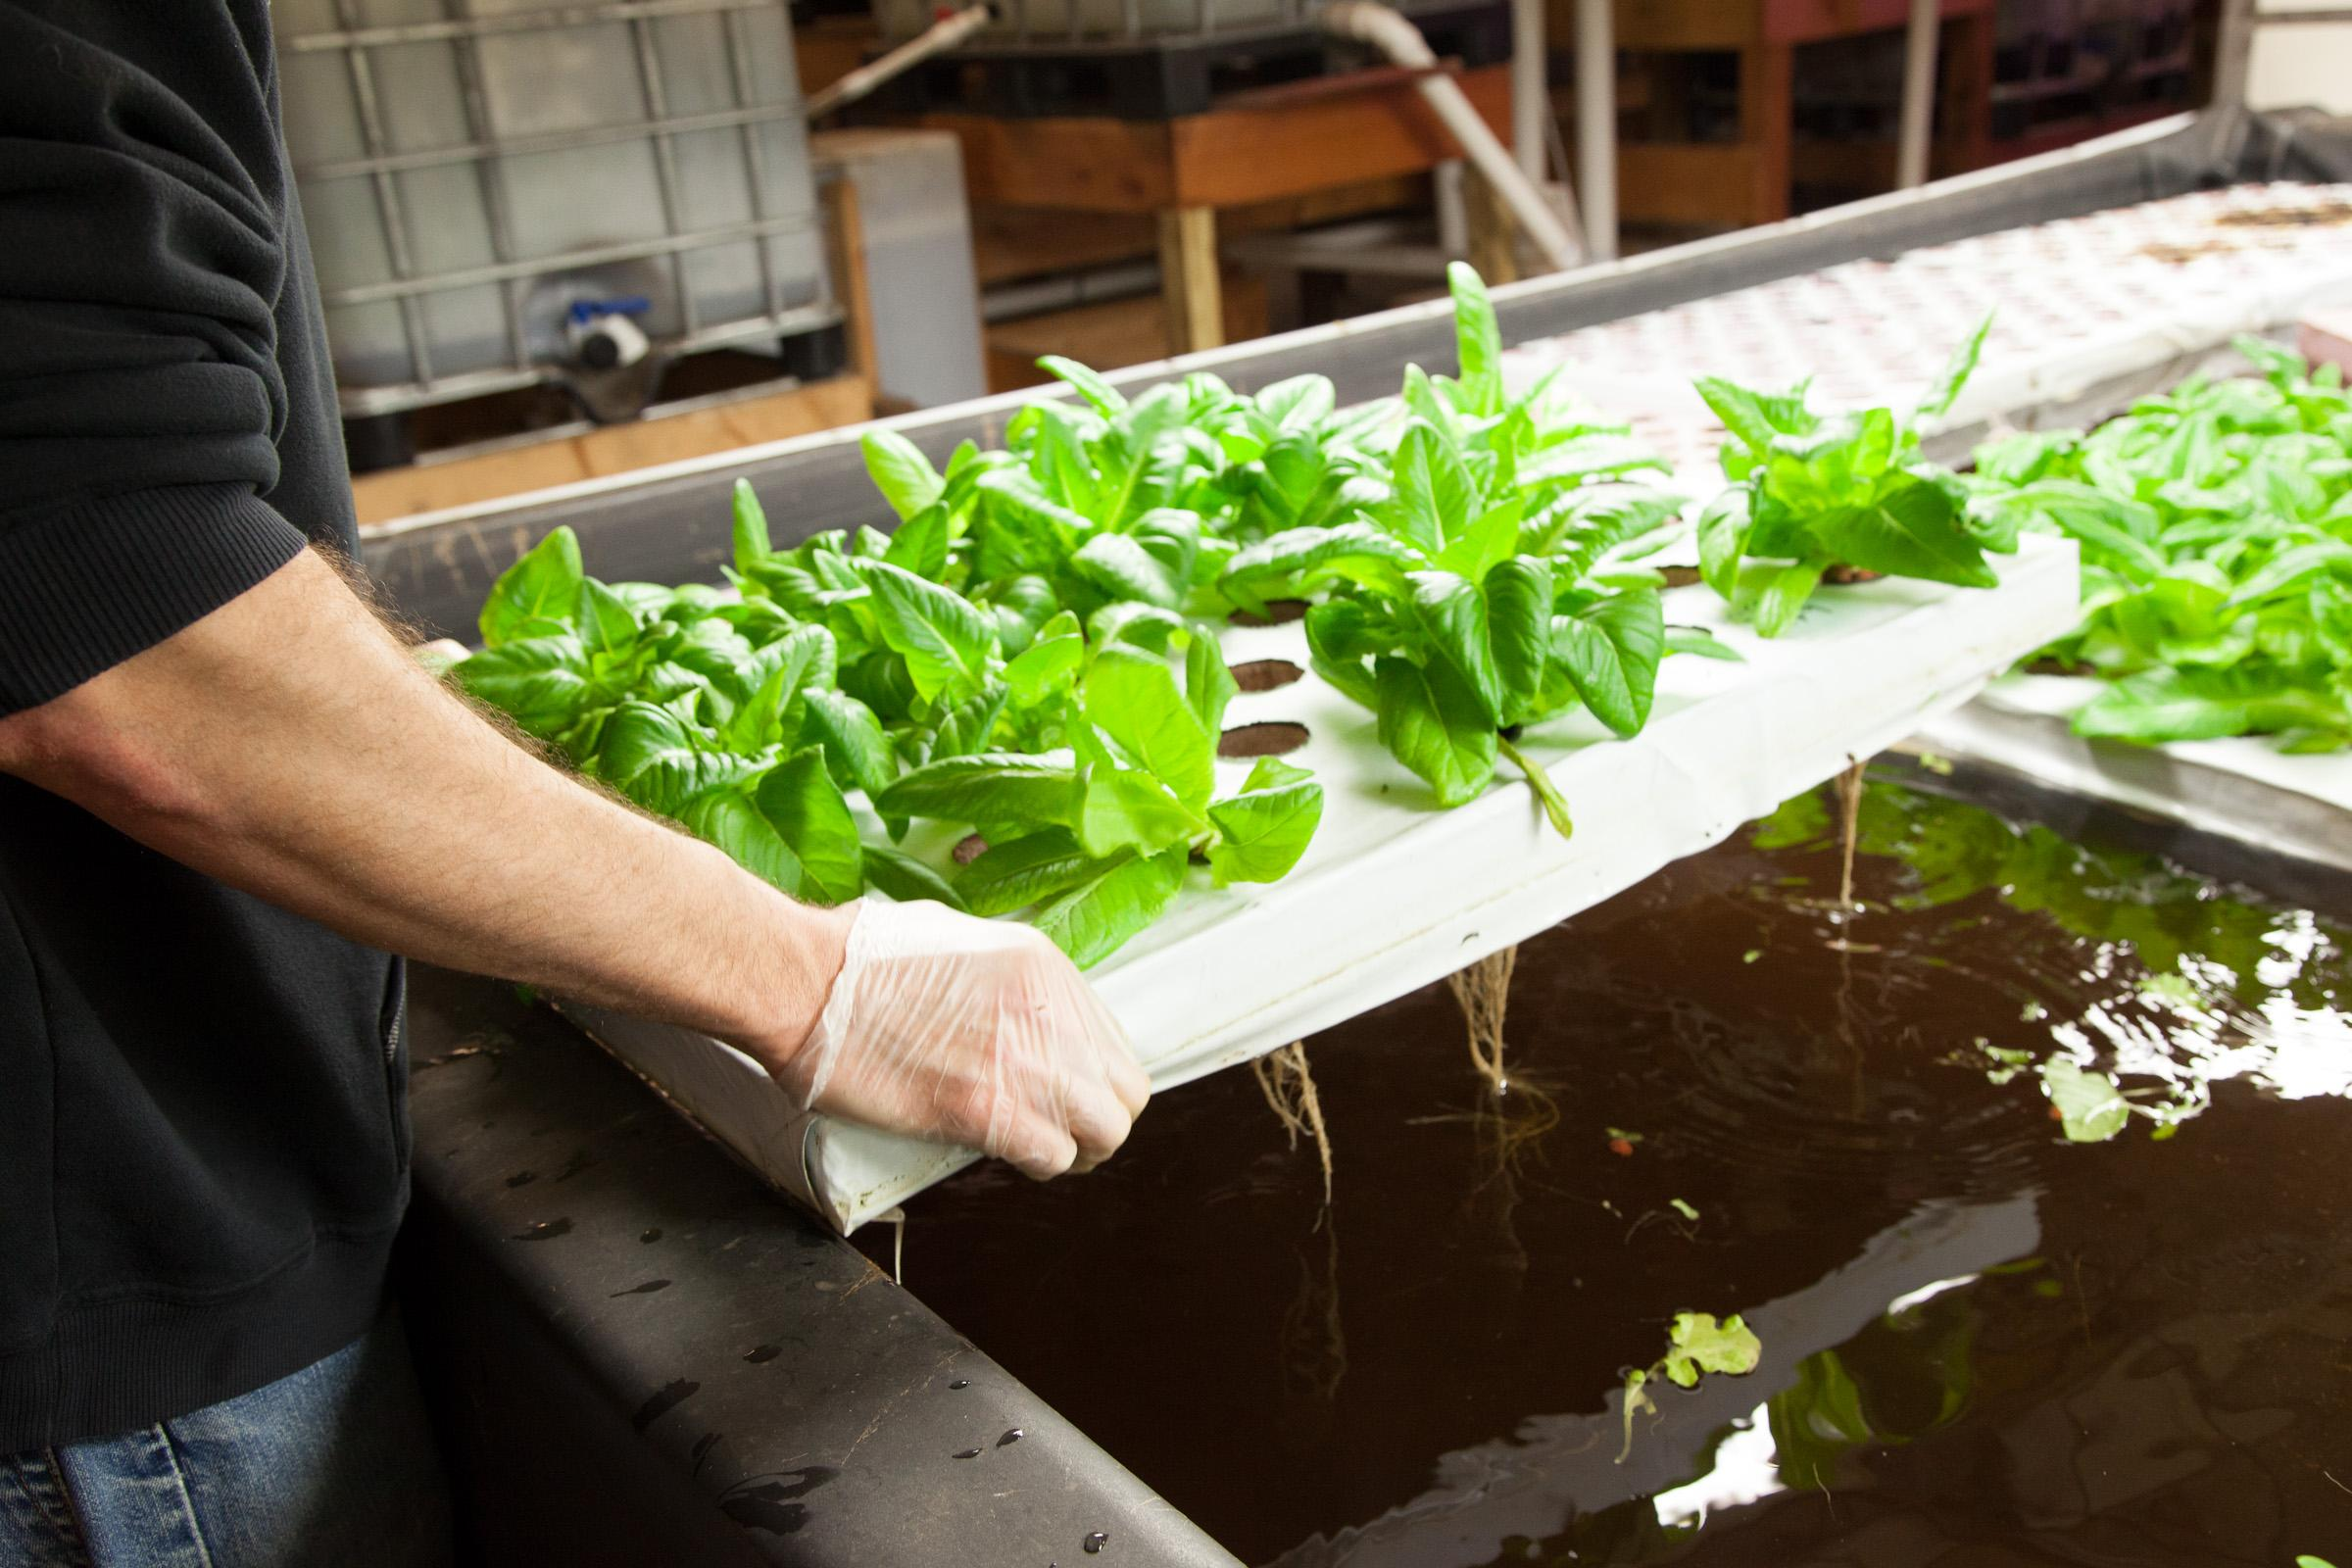 Indoor Farming Future Takes Root In Abandoned Buildings